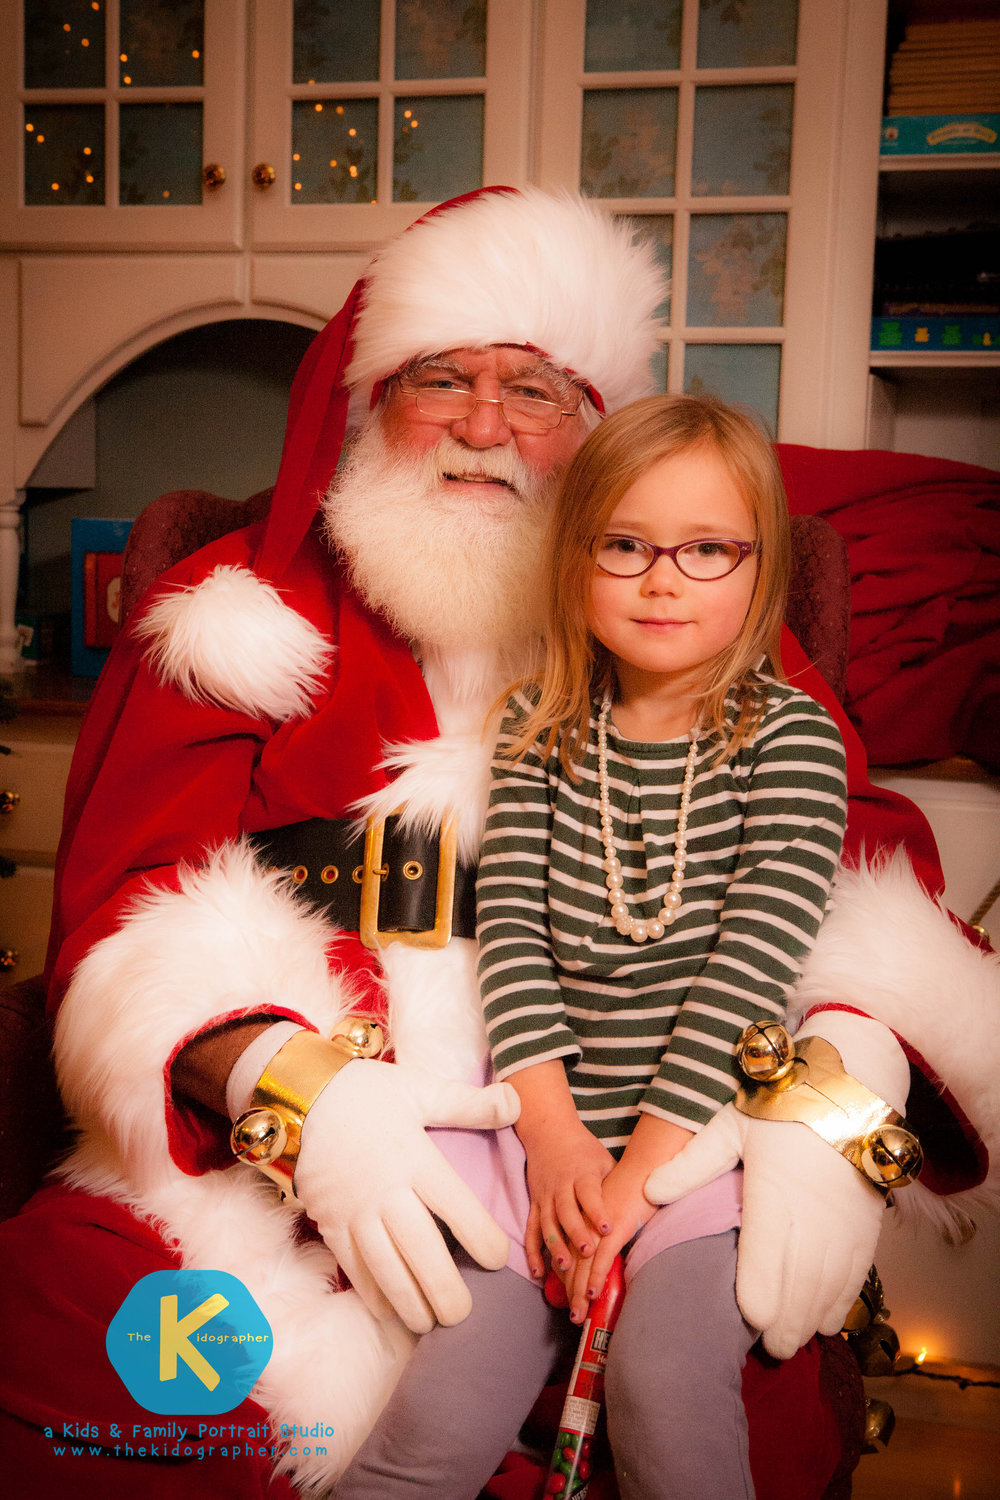 THE_KIDOGRAPHER_PHOTOS_WITH_SANTA-131.jpg